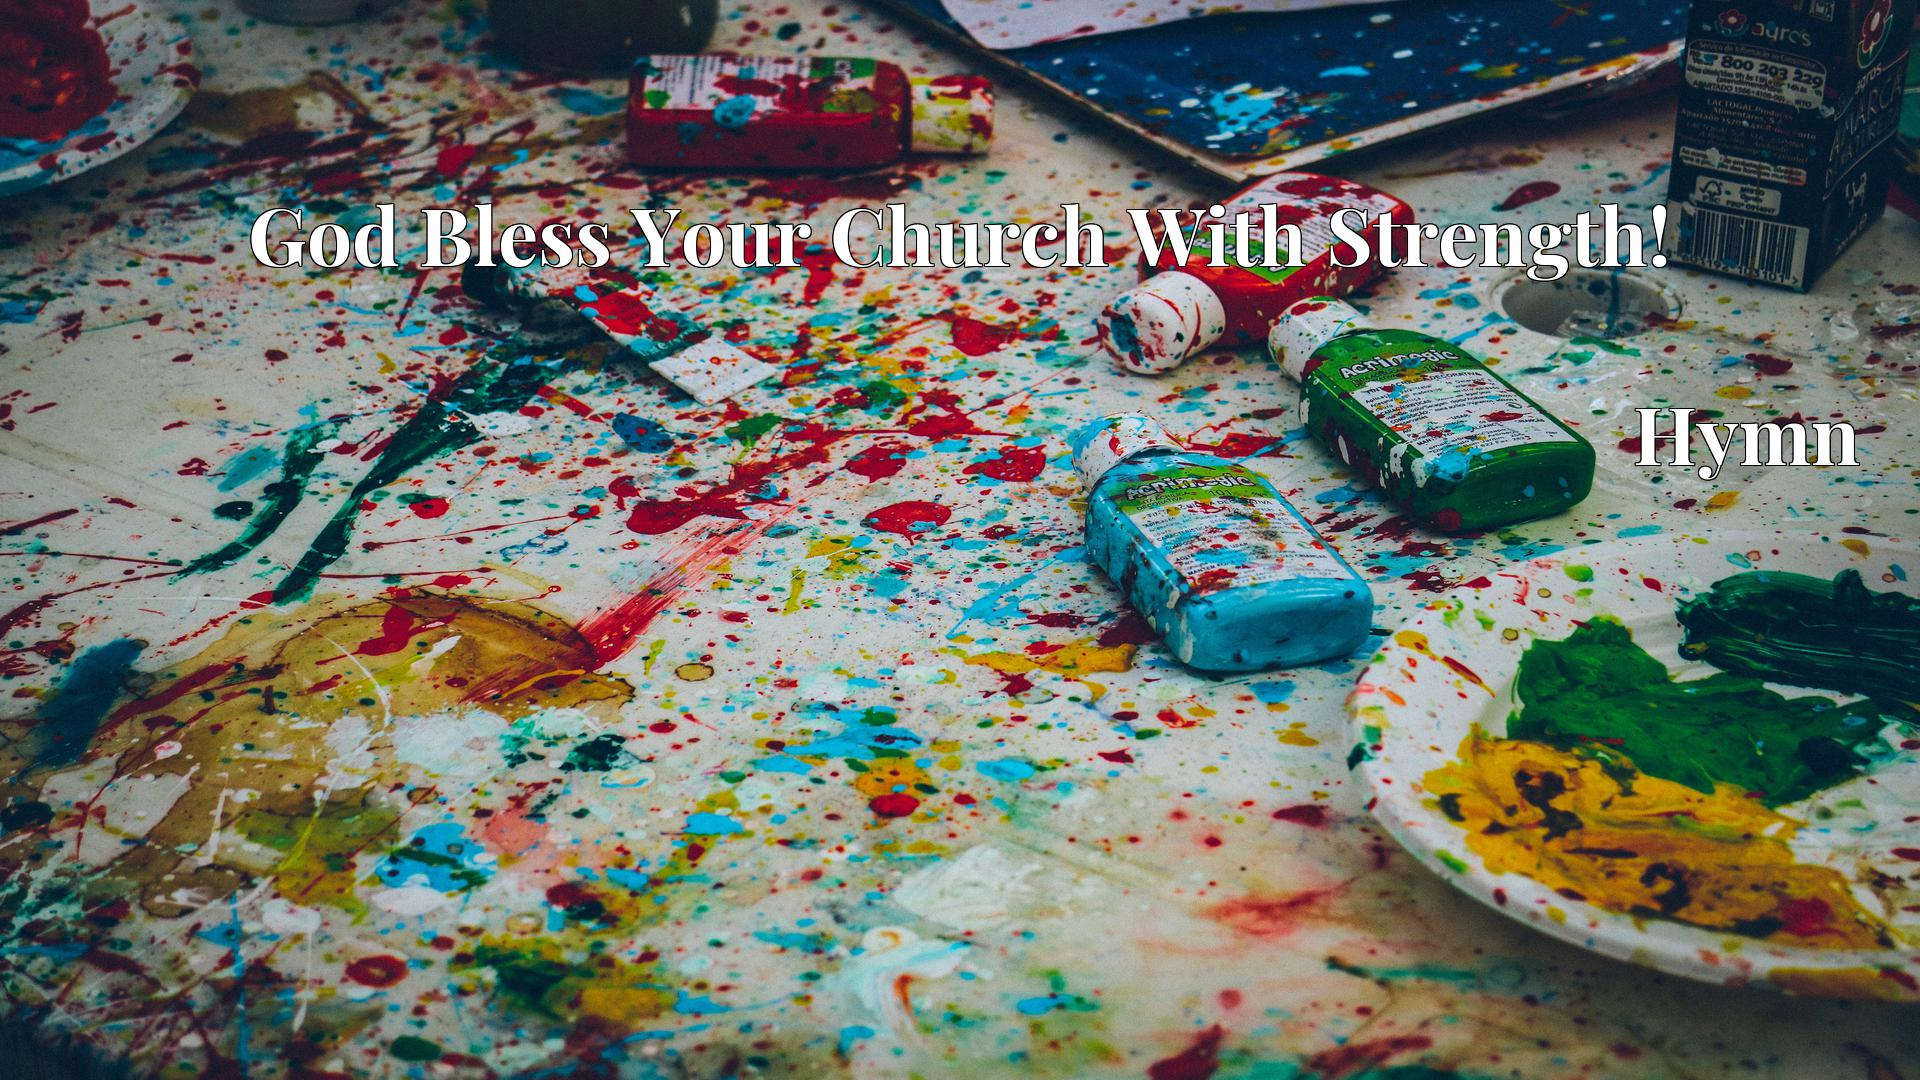 God Bless Your Church With Strength! - Hymn